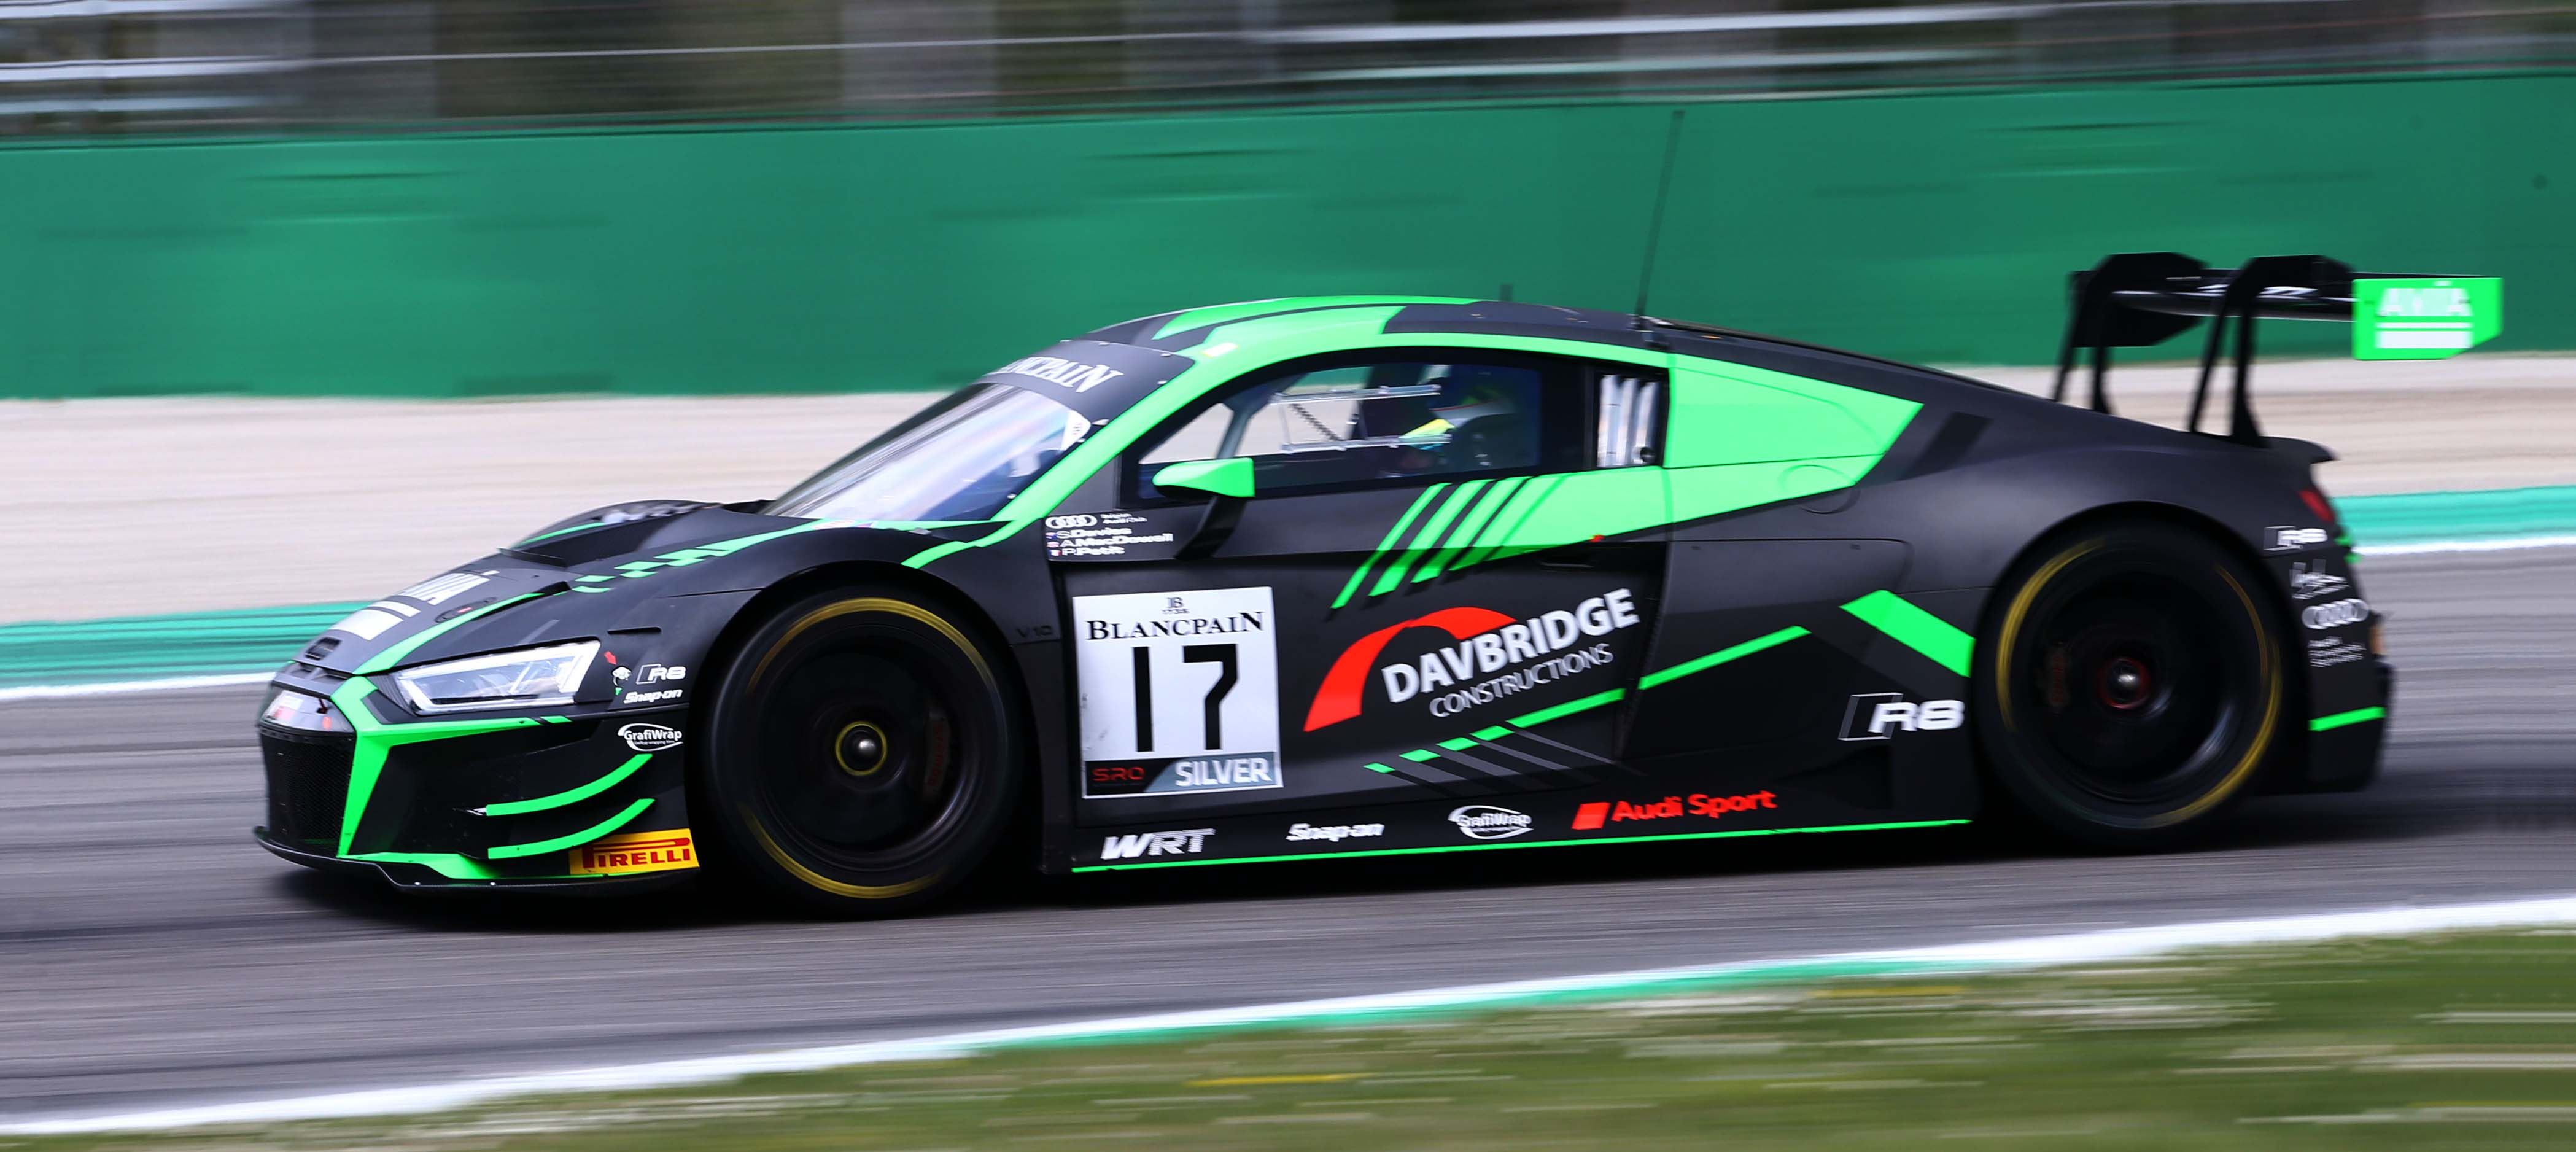 Alex Macdowall Racing European Le Mans Series Lmgte Champion